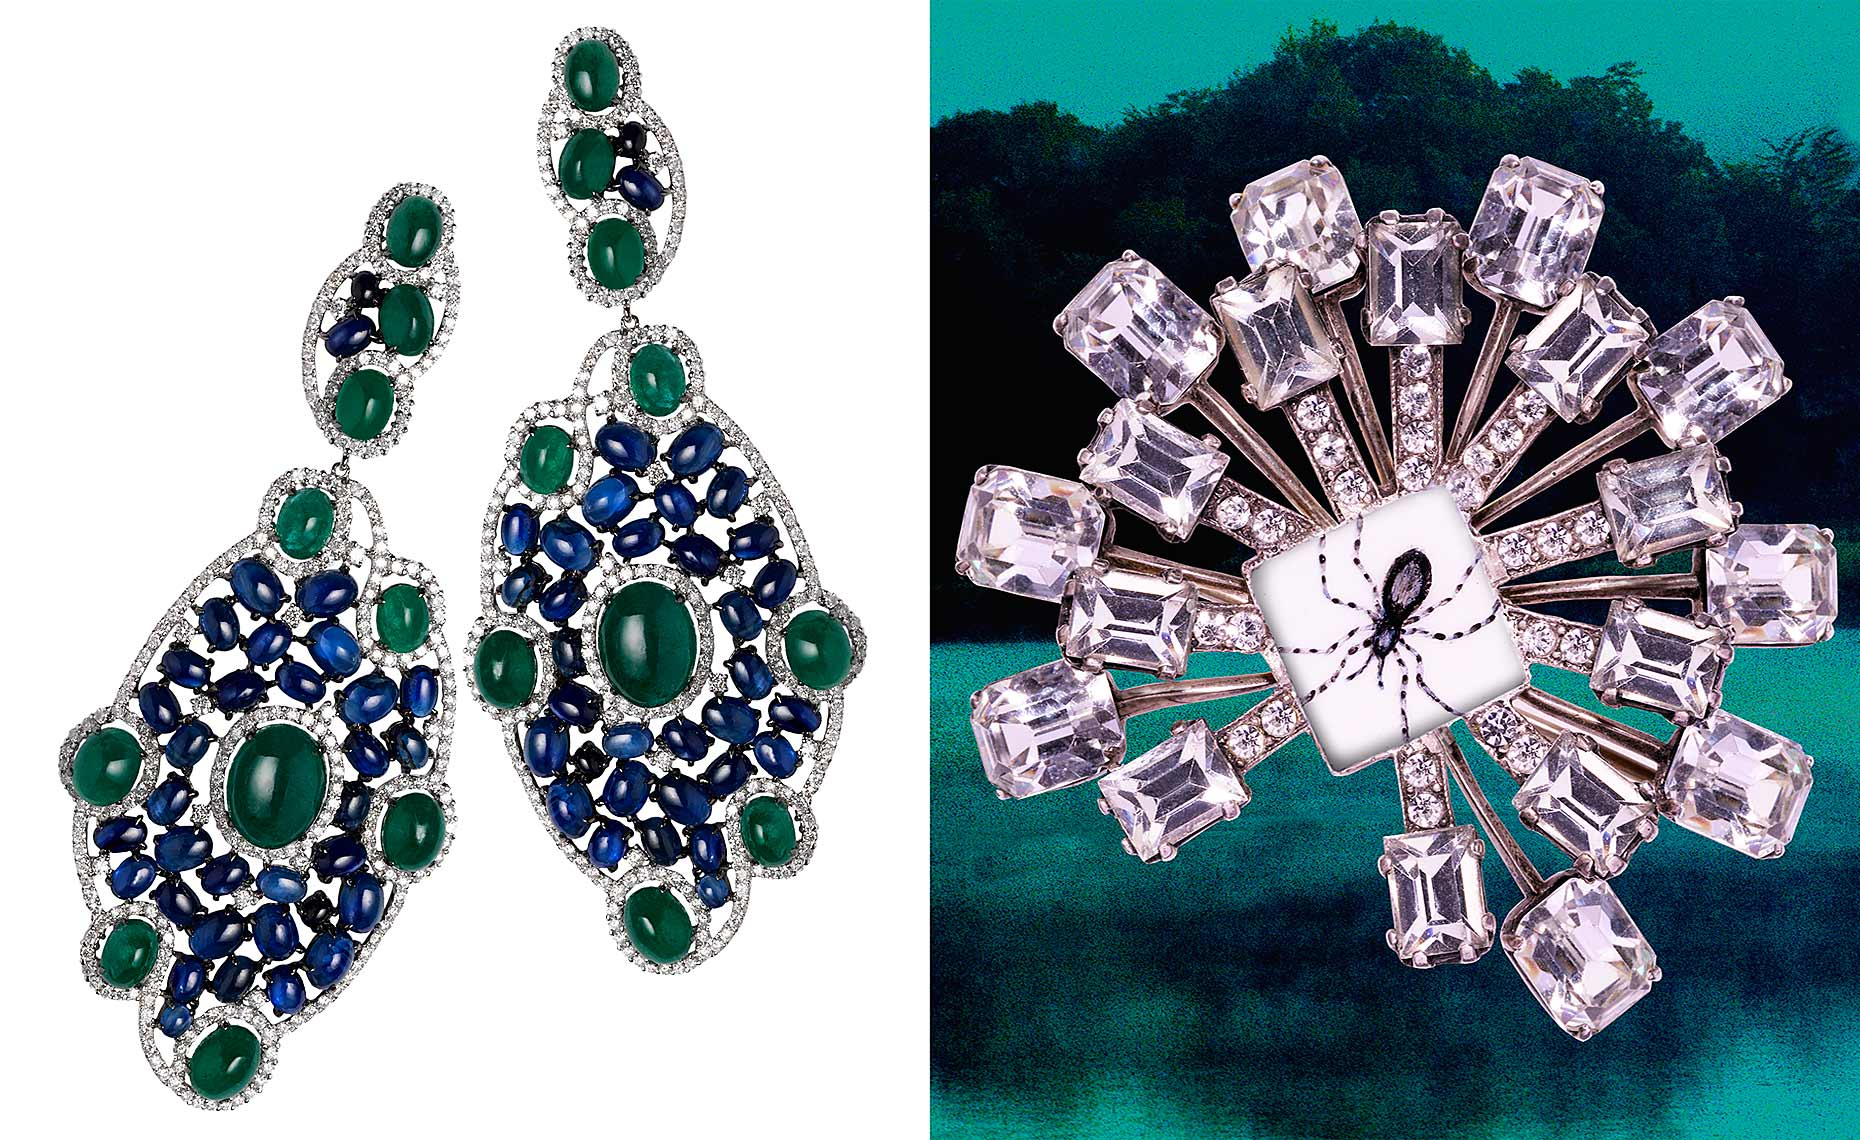 Emerald and sapphire cabochon earrings and Pamela Tuohy spider broach